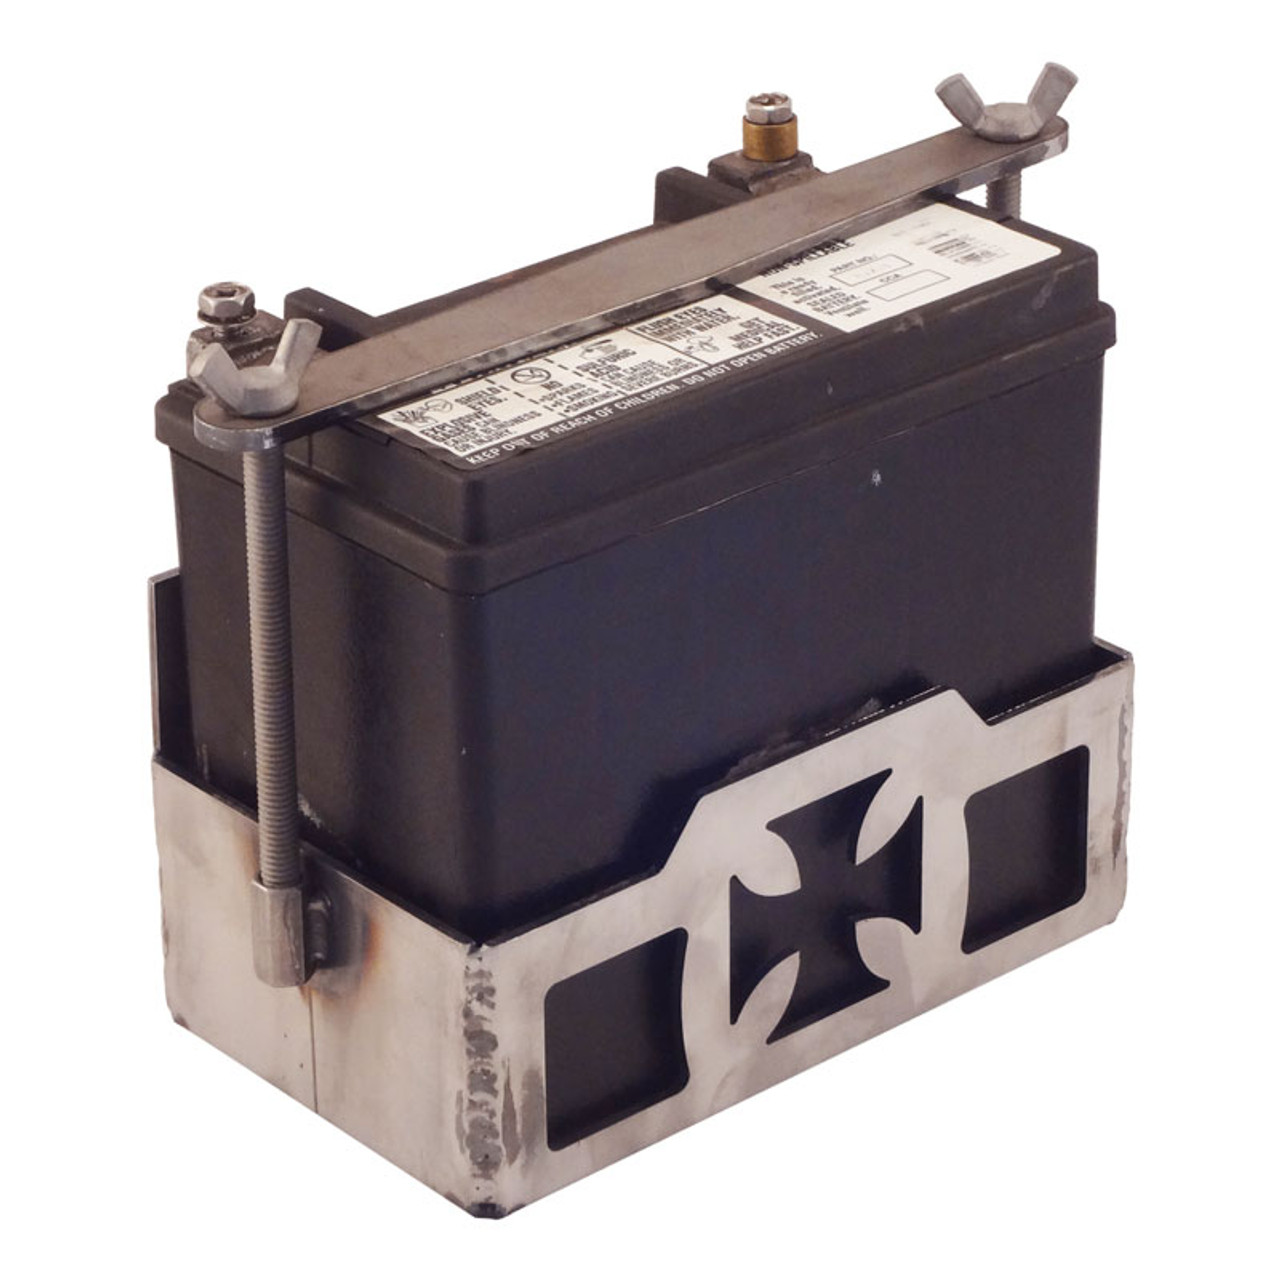 Harley Davidson Battery >> Cross Oem Style Battery Box With Clamp For Harley Davidson Battery